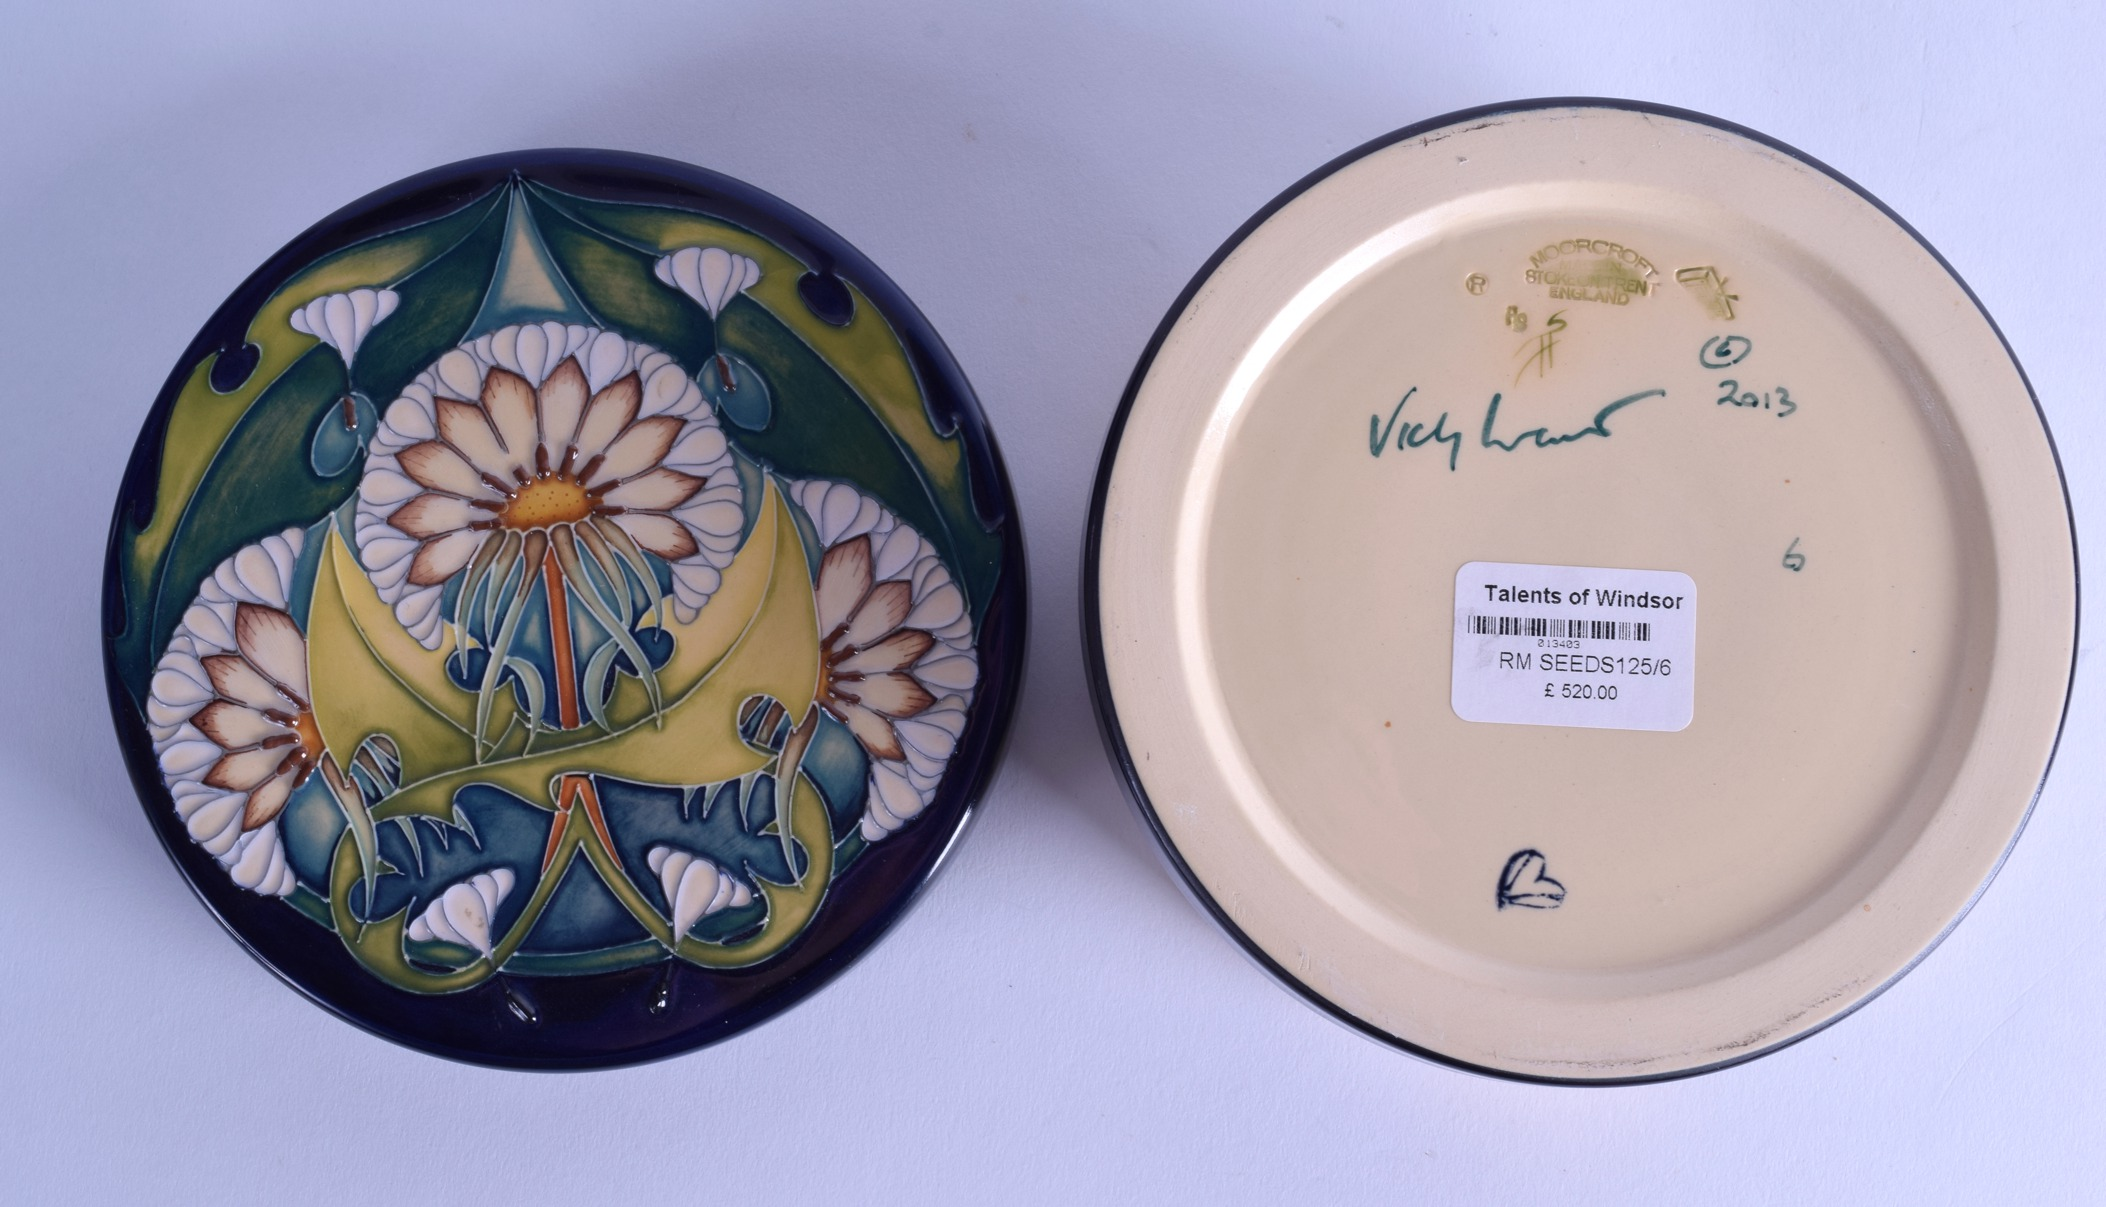 Lot 45 - A MOORCROFT 'SEEDS' LIDDED BOX AND COVER designed by Vicky Lovatt. 16 cm diameter.